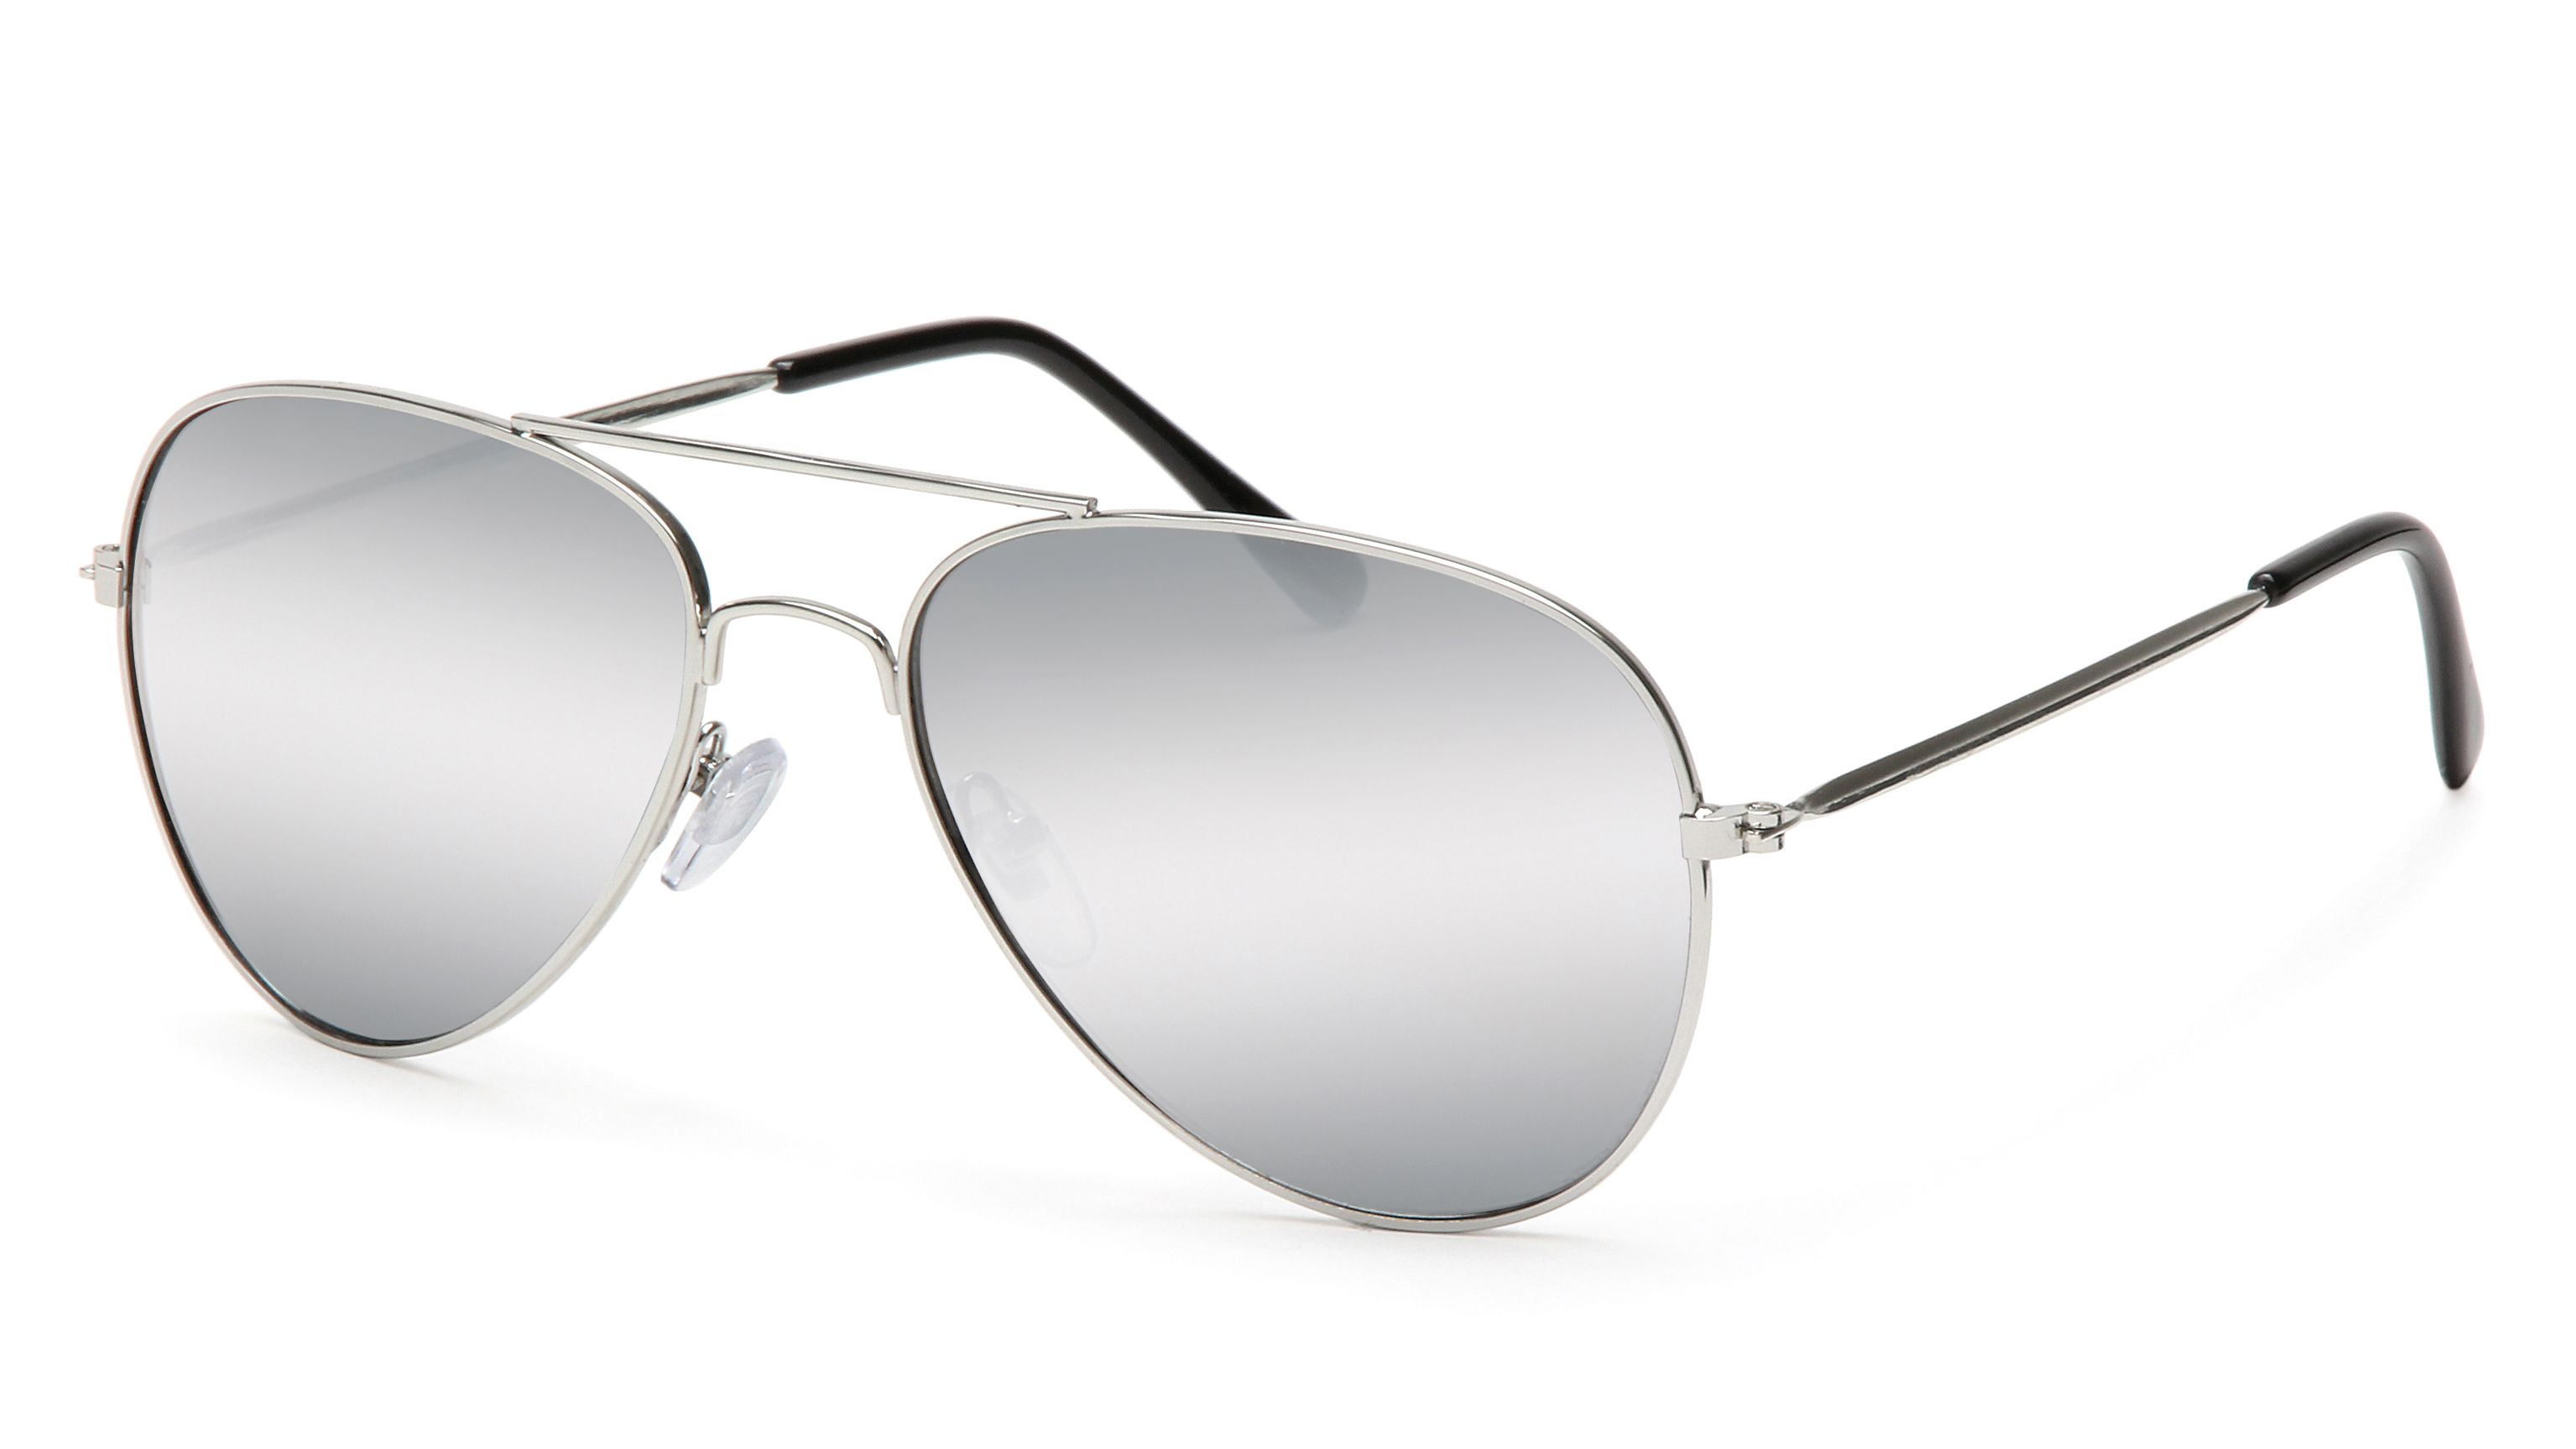 Main view sunglasses 3022908